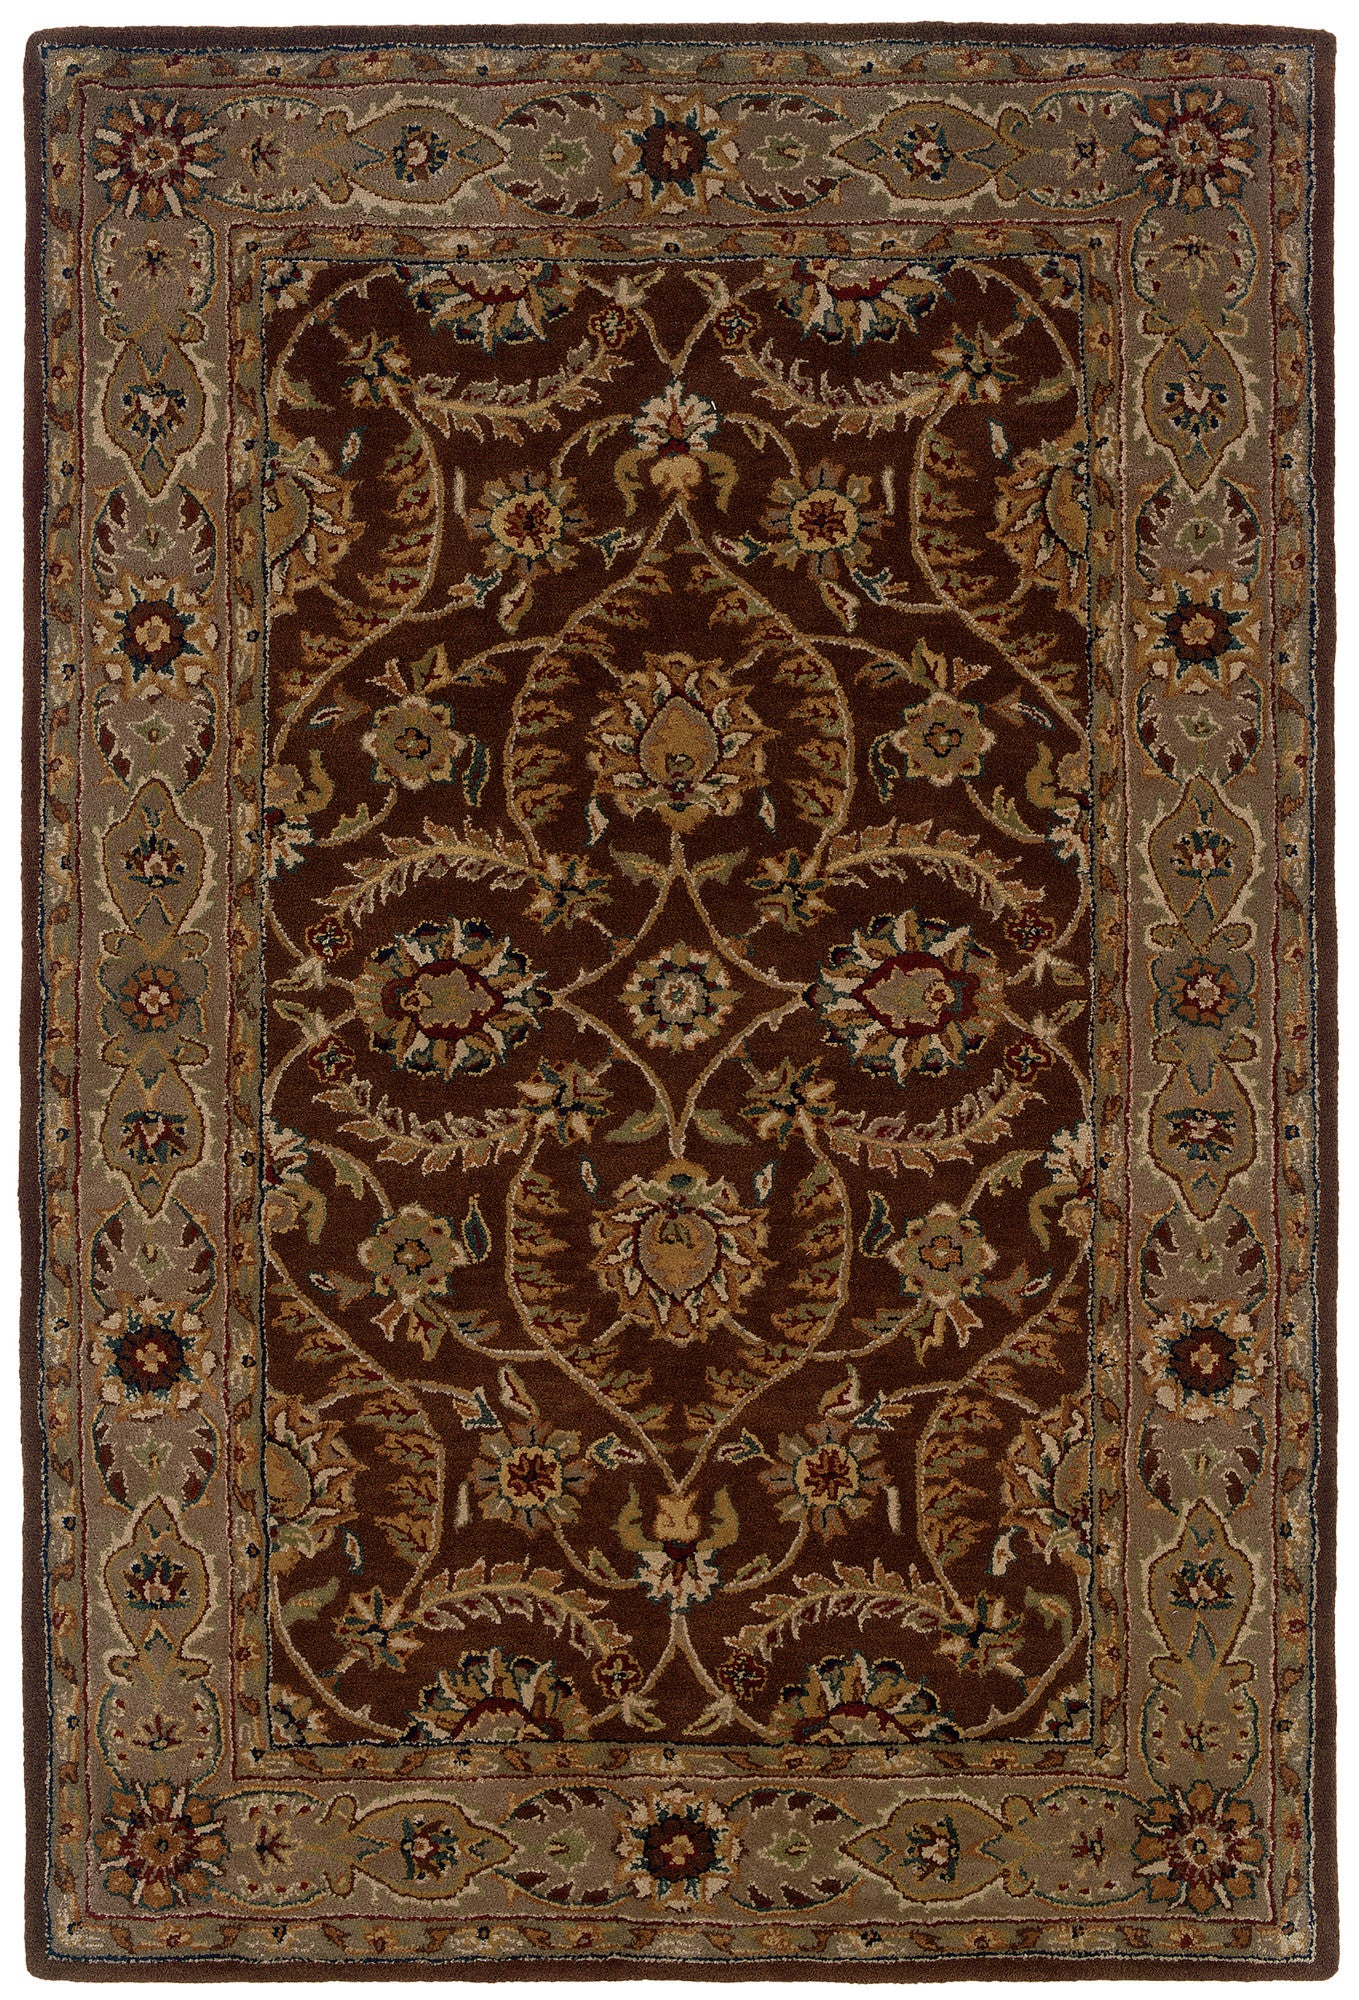 LR Resources Heritage 10106 Med Brown/ Beige Area Rug